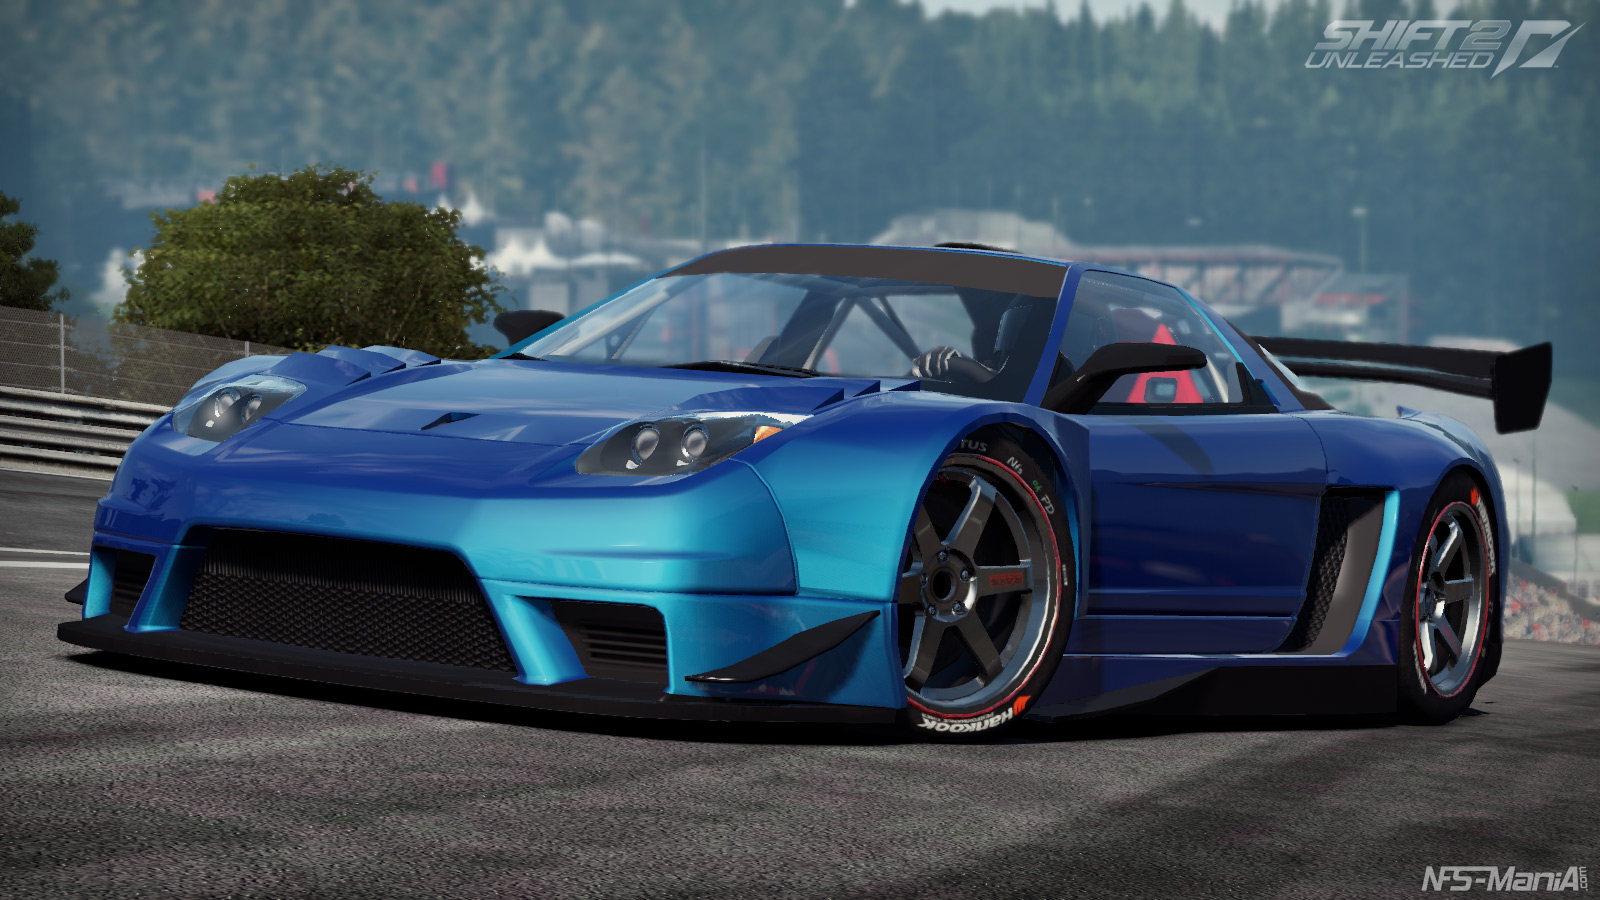 acura nsx 2002 need for speed wiki fandom powered by wikia. Black Bedroom Furniture Sets. Home Design Ideas